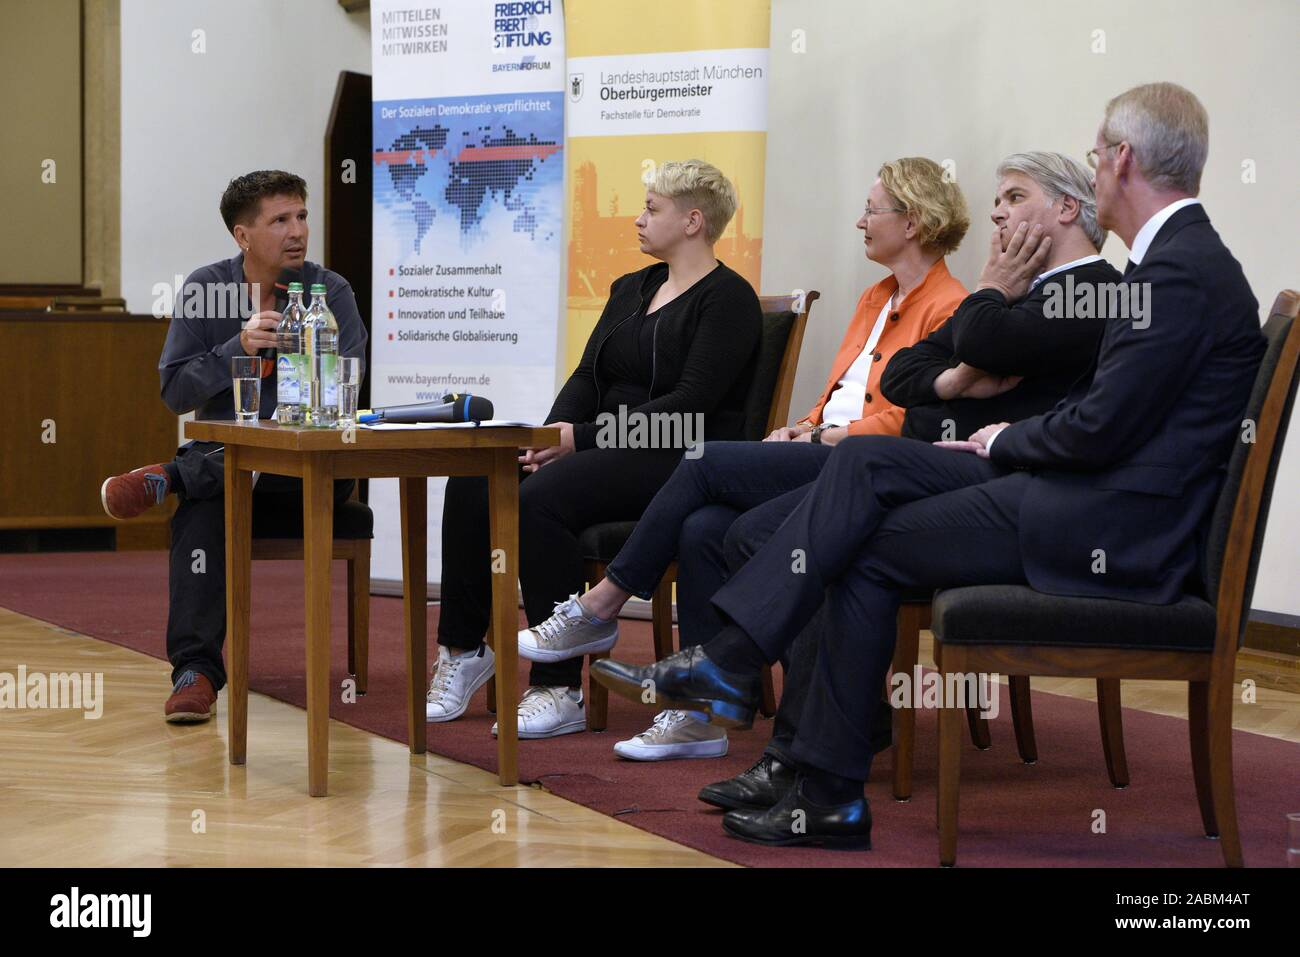 """Discussion event at the Munich City Hall on the topic of """"Right-wing terror and the failure of the state"""" on the first anniversary of the pronouncement of judgement in the NSU proceedings. The picture shows the discussants from the left: Moderator Thies Marsen (Bavarian Broadcasting), Caro Keller (NSU-watch), Annette Ramelsberger (Süddeutsche Zeitung), Mehmet Daimagüler (representative in the NSU trial) and Clemens Binninger (former chairman of the NSU investigative committee in the German Bundestag). [automated translation] Stock Photo"""